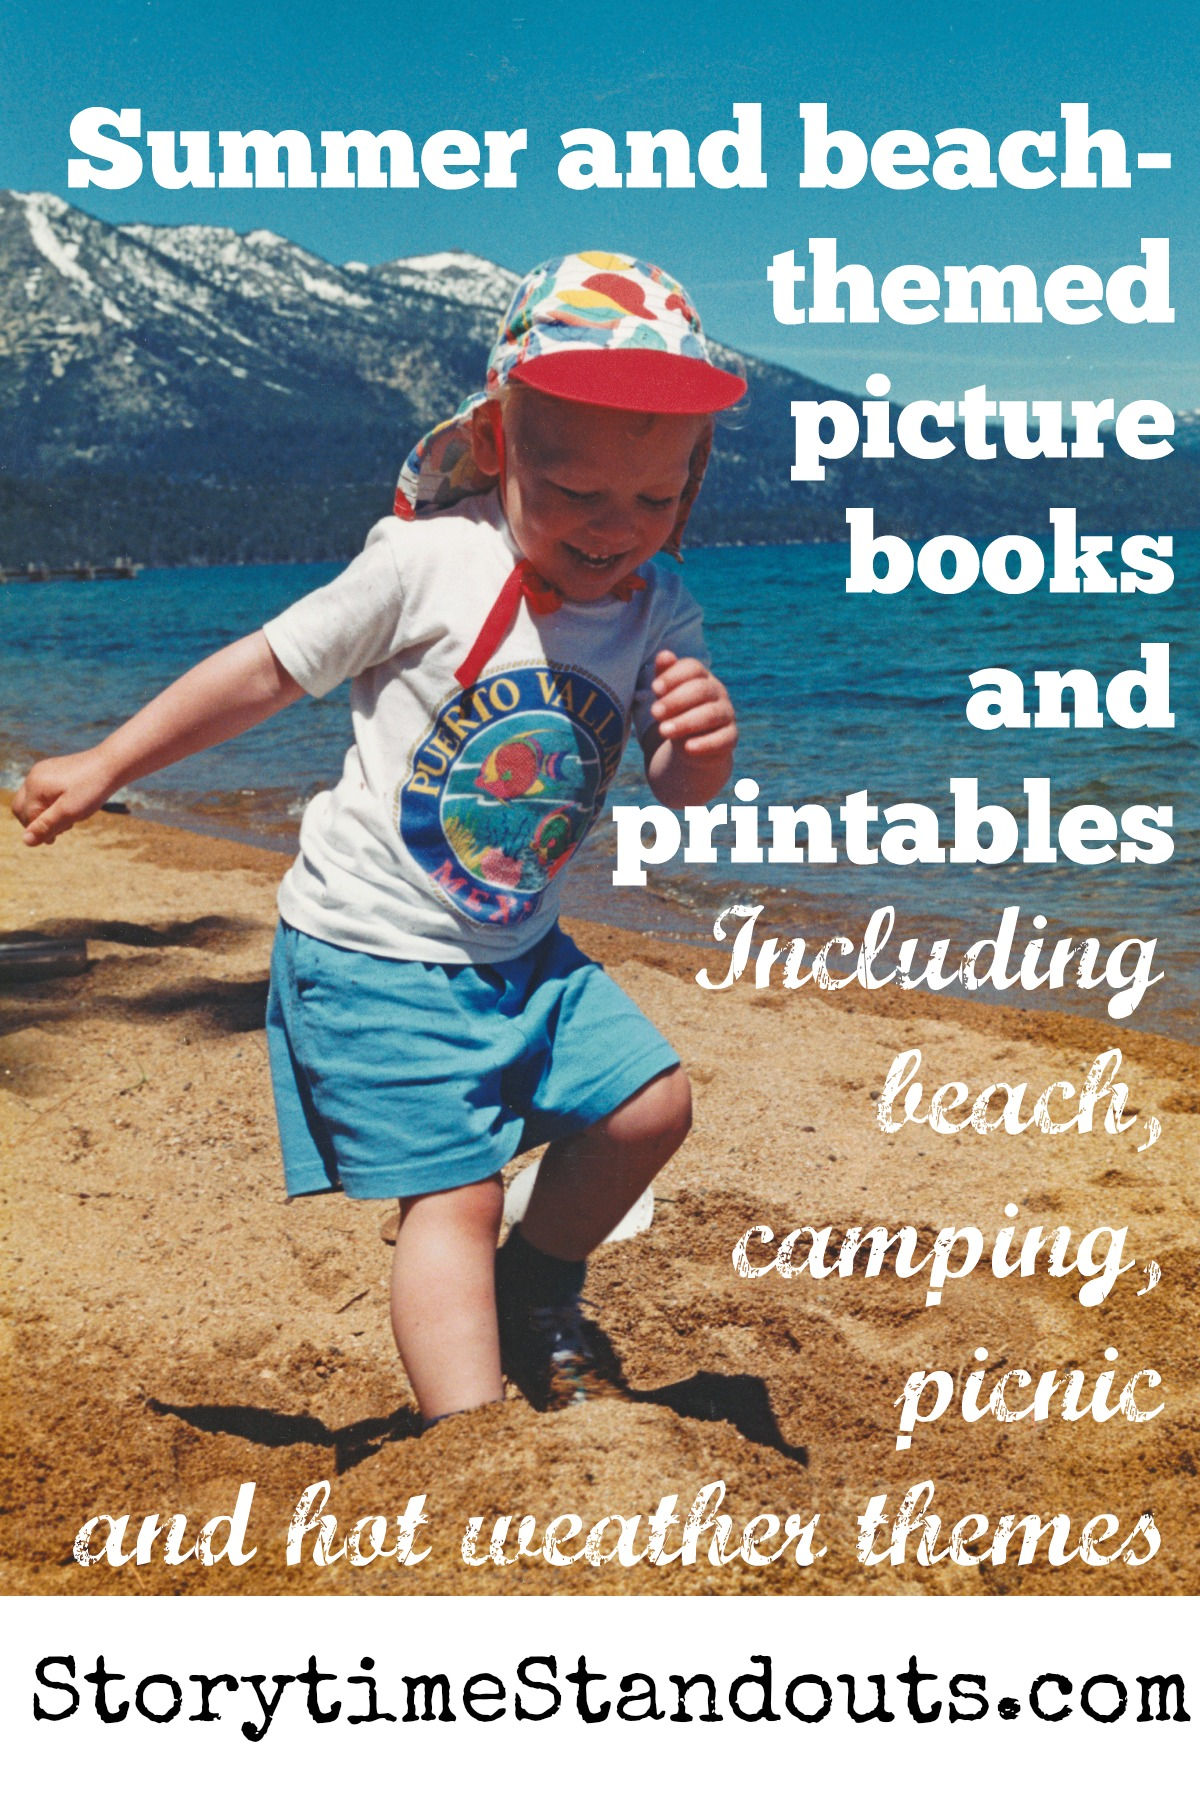 Storytime Standouts highlights summer, camping and beach theme picture books